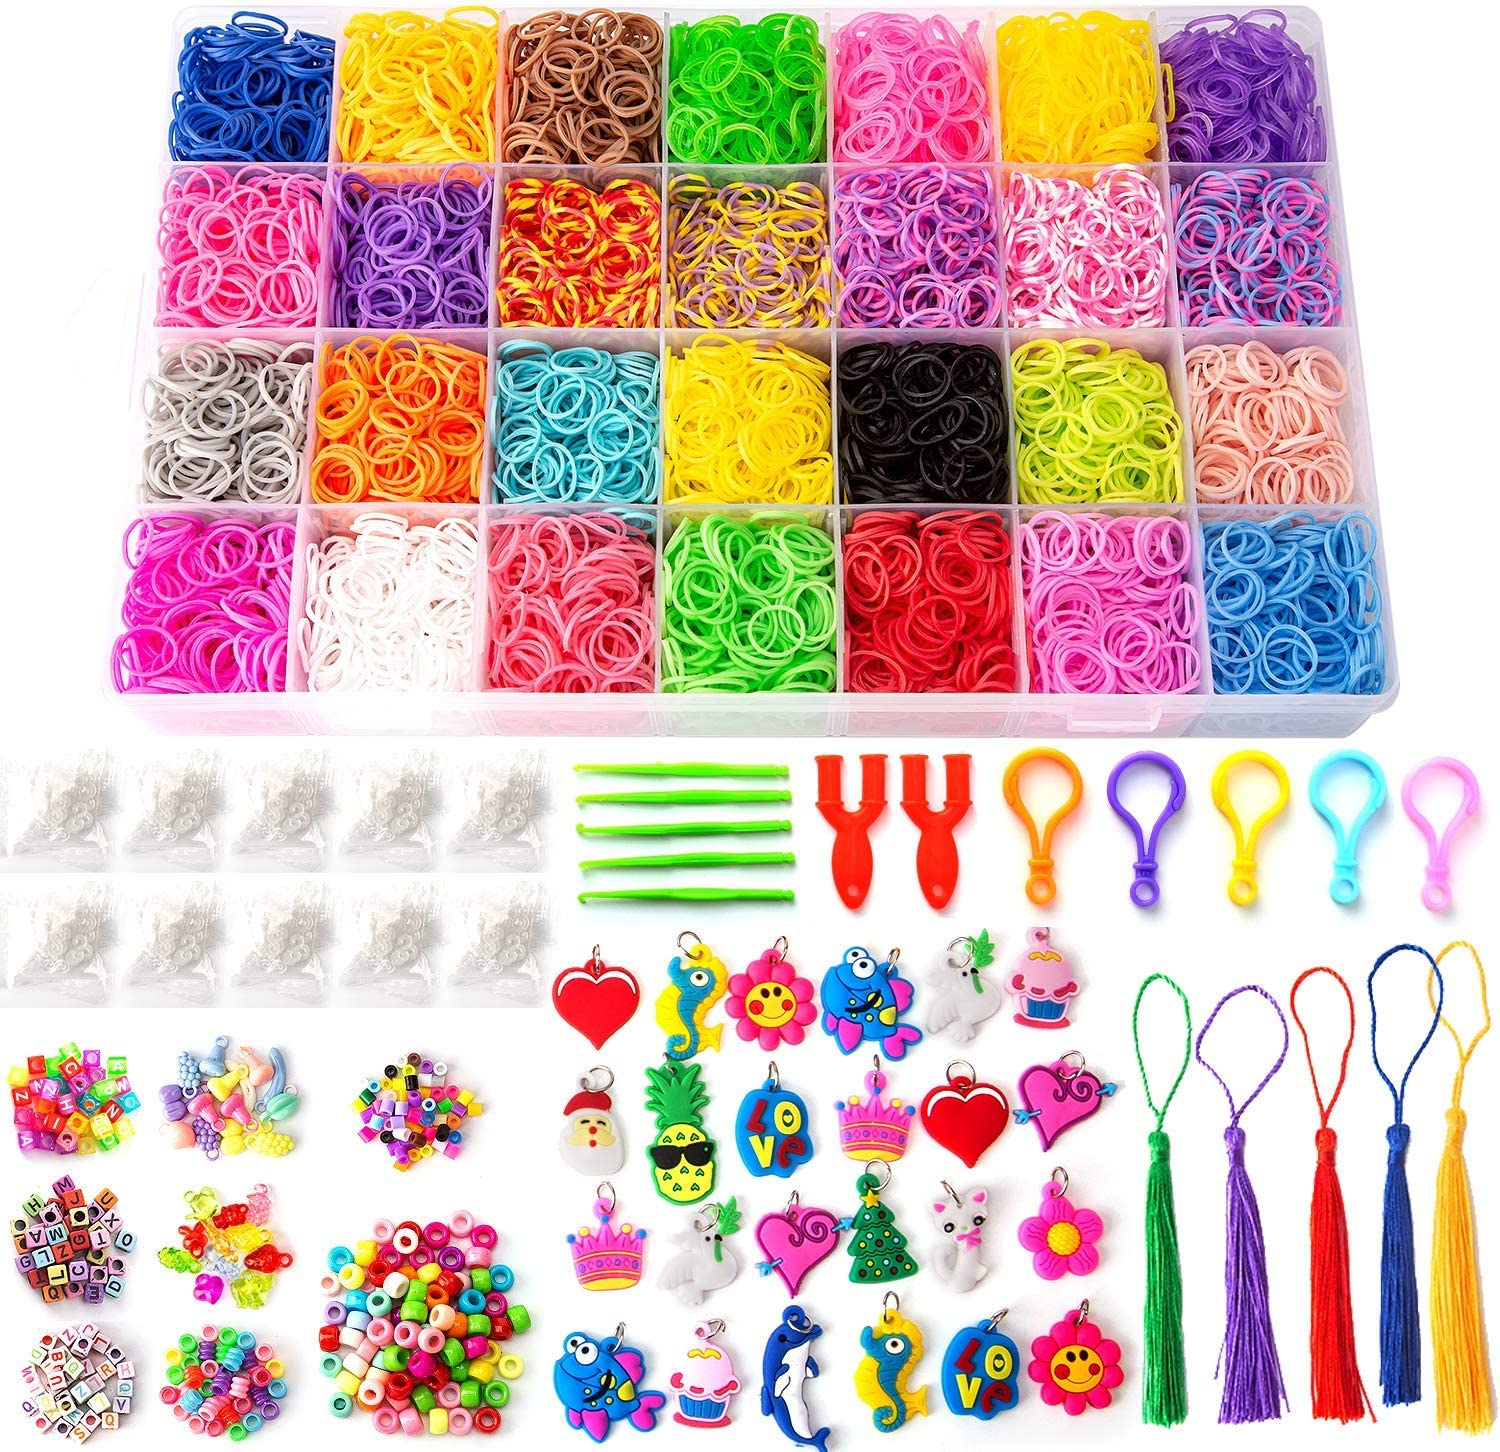 95 Letter Beads 500 S-Clips 5 Tassels, 5 Backpack Hooks 24 Charms Including 11,000 Rubber Loom Bands 28 Colors SAVITA 11800+ Rainbow Rubber Bands Kit for DIY Bracelet Making 170 Colorful Beads